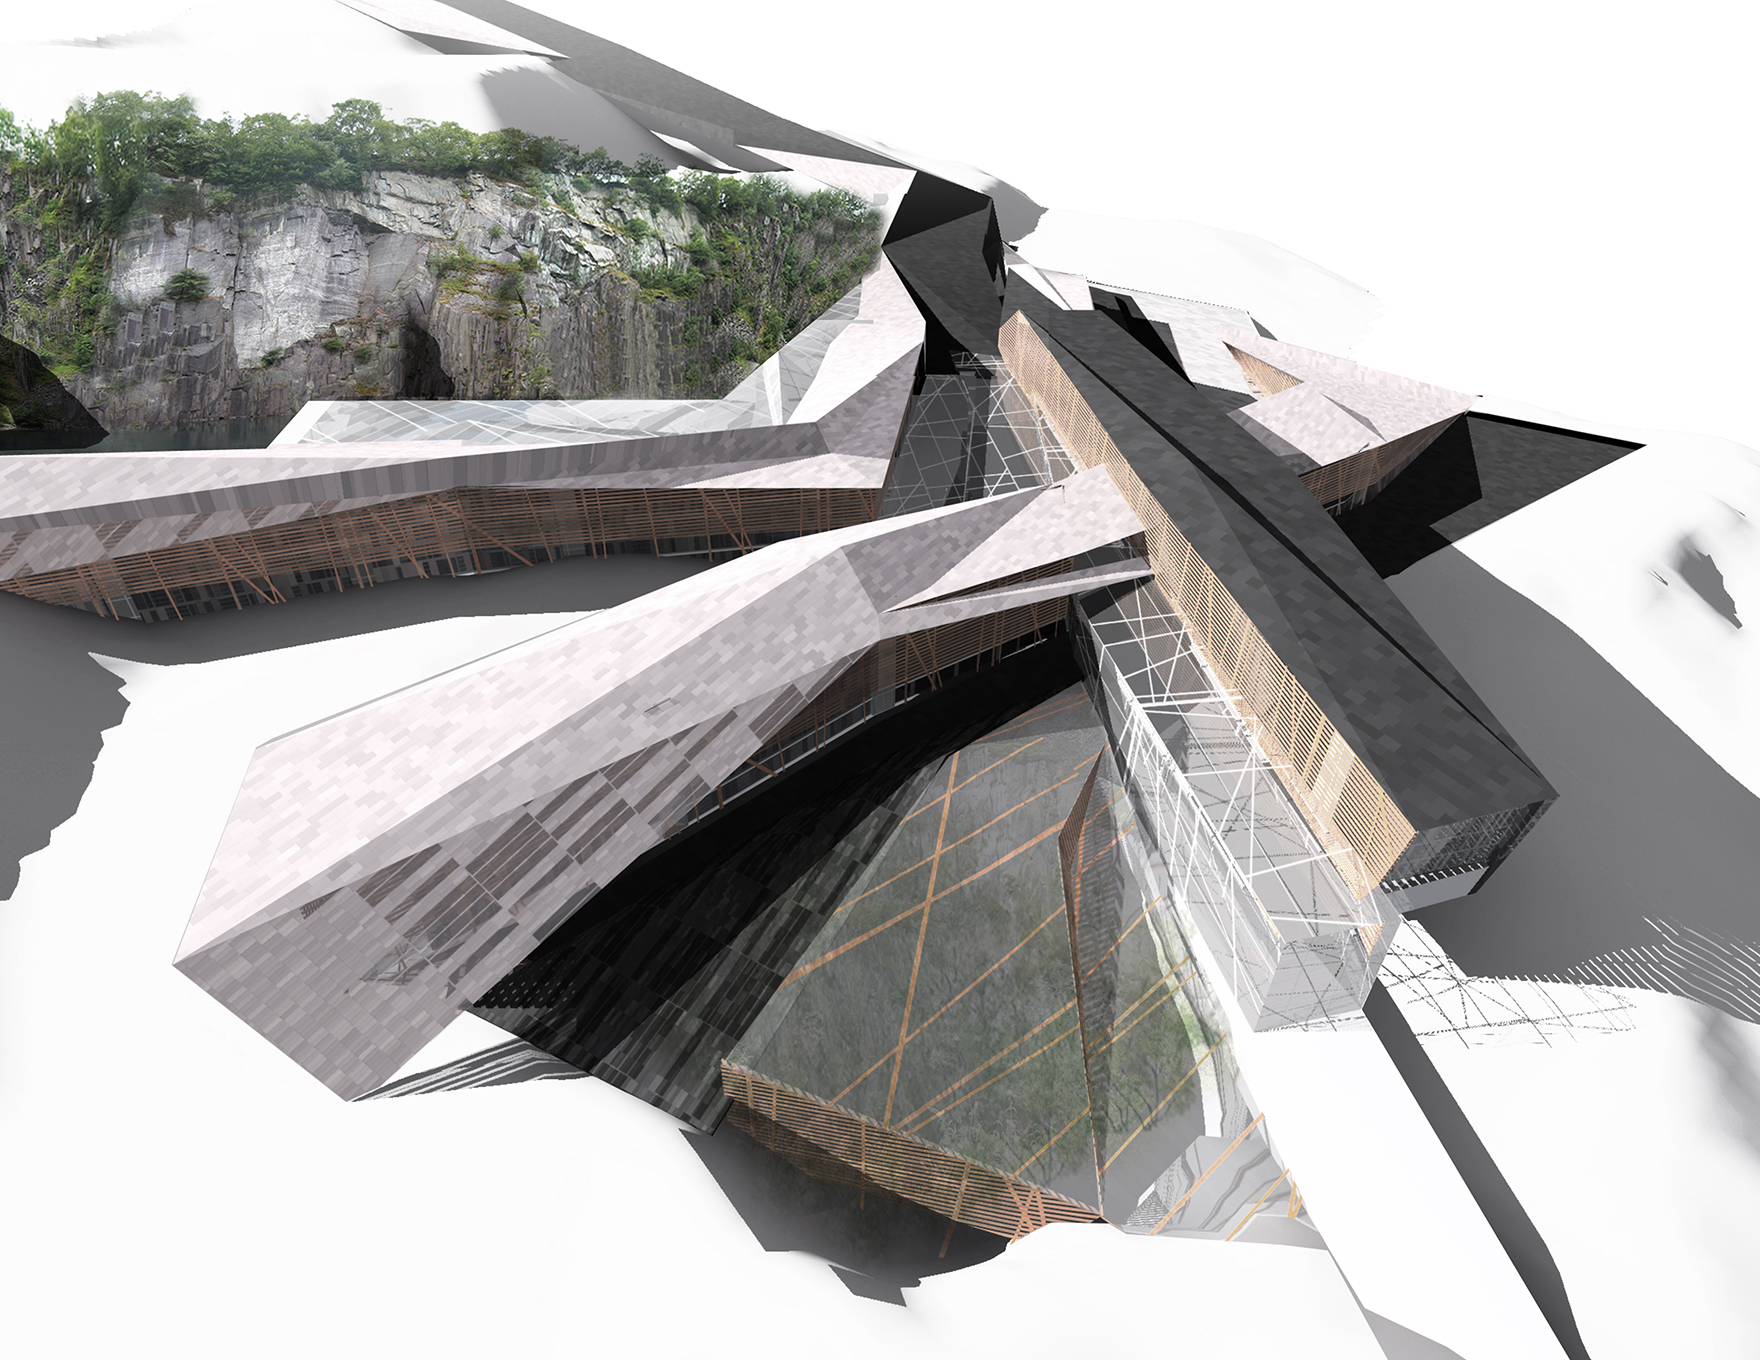 Indoor Snow Expertise Snowdonia Gateway Wales Concept L